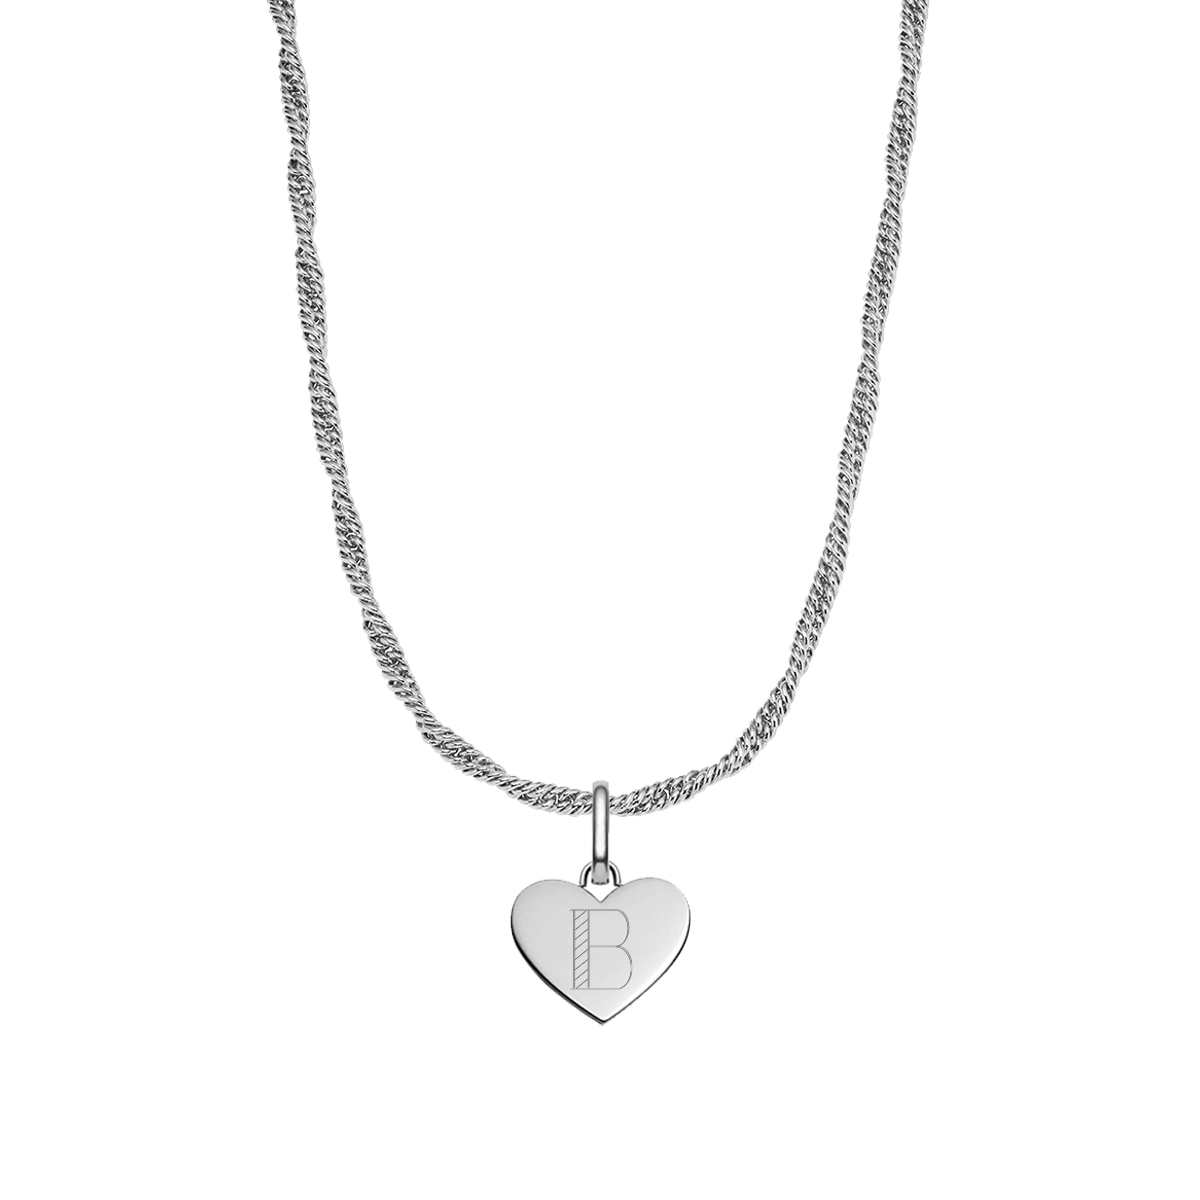 Heart Rope Chain Necklace (Silver)